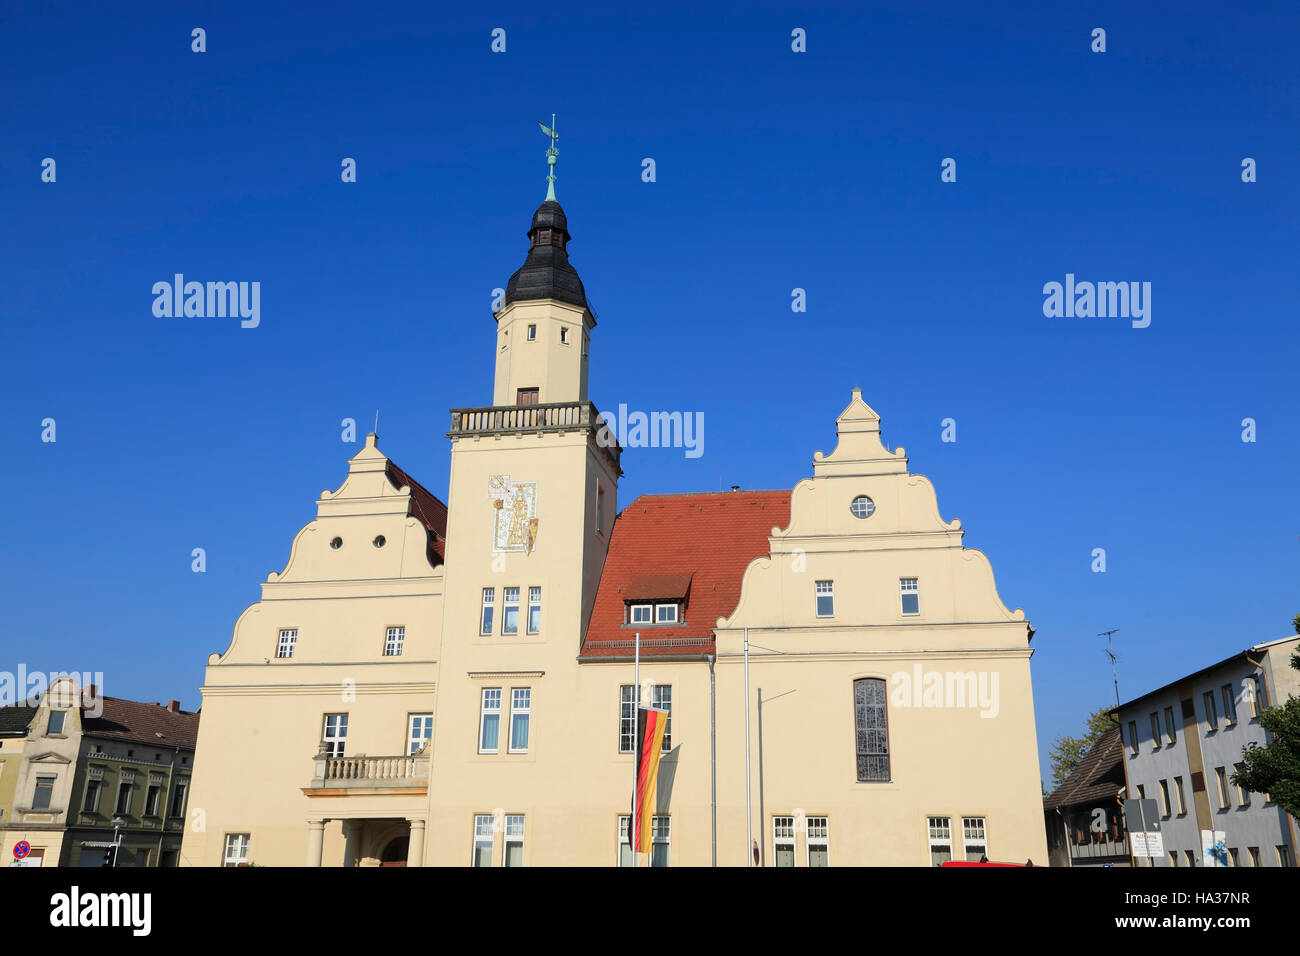 Town hall, Coswig / Elbe, Saxony-Anhalt, Germany, Europe - Stock Image